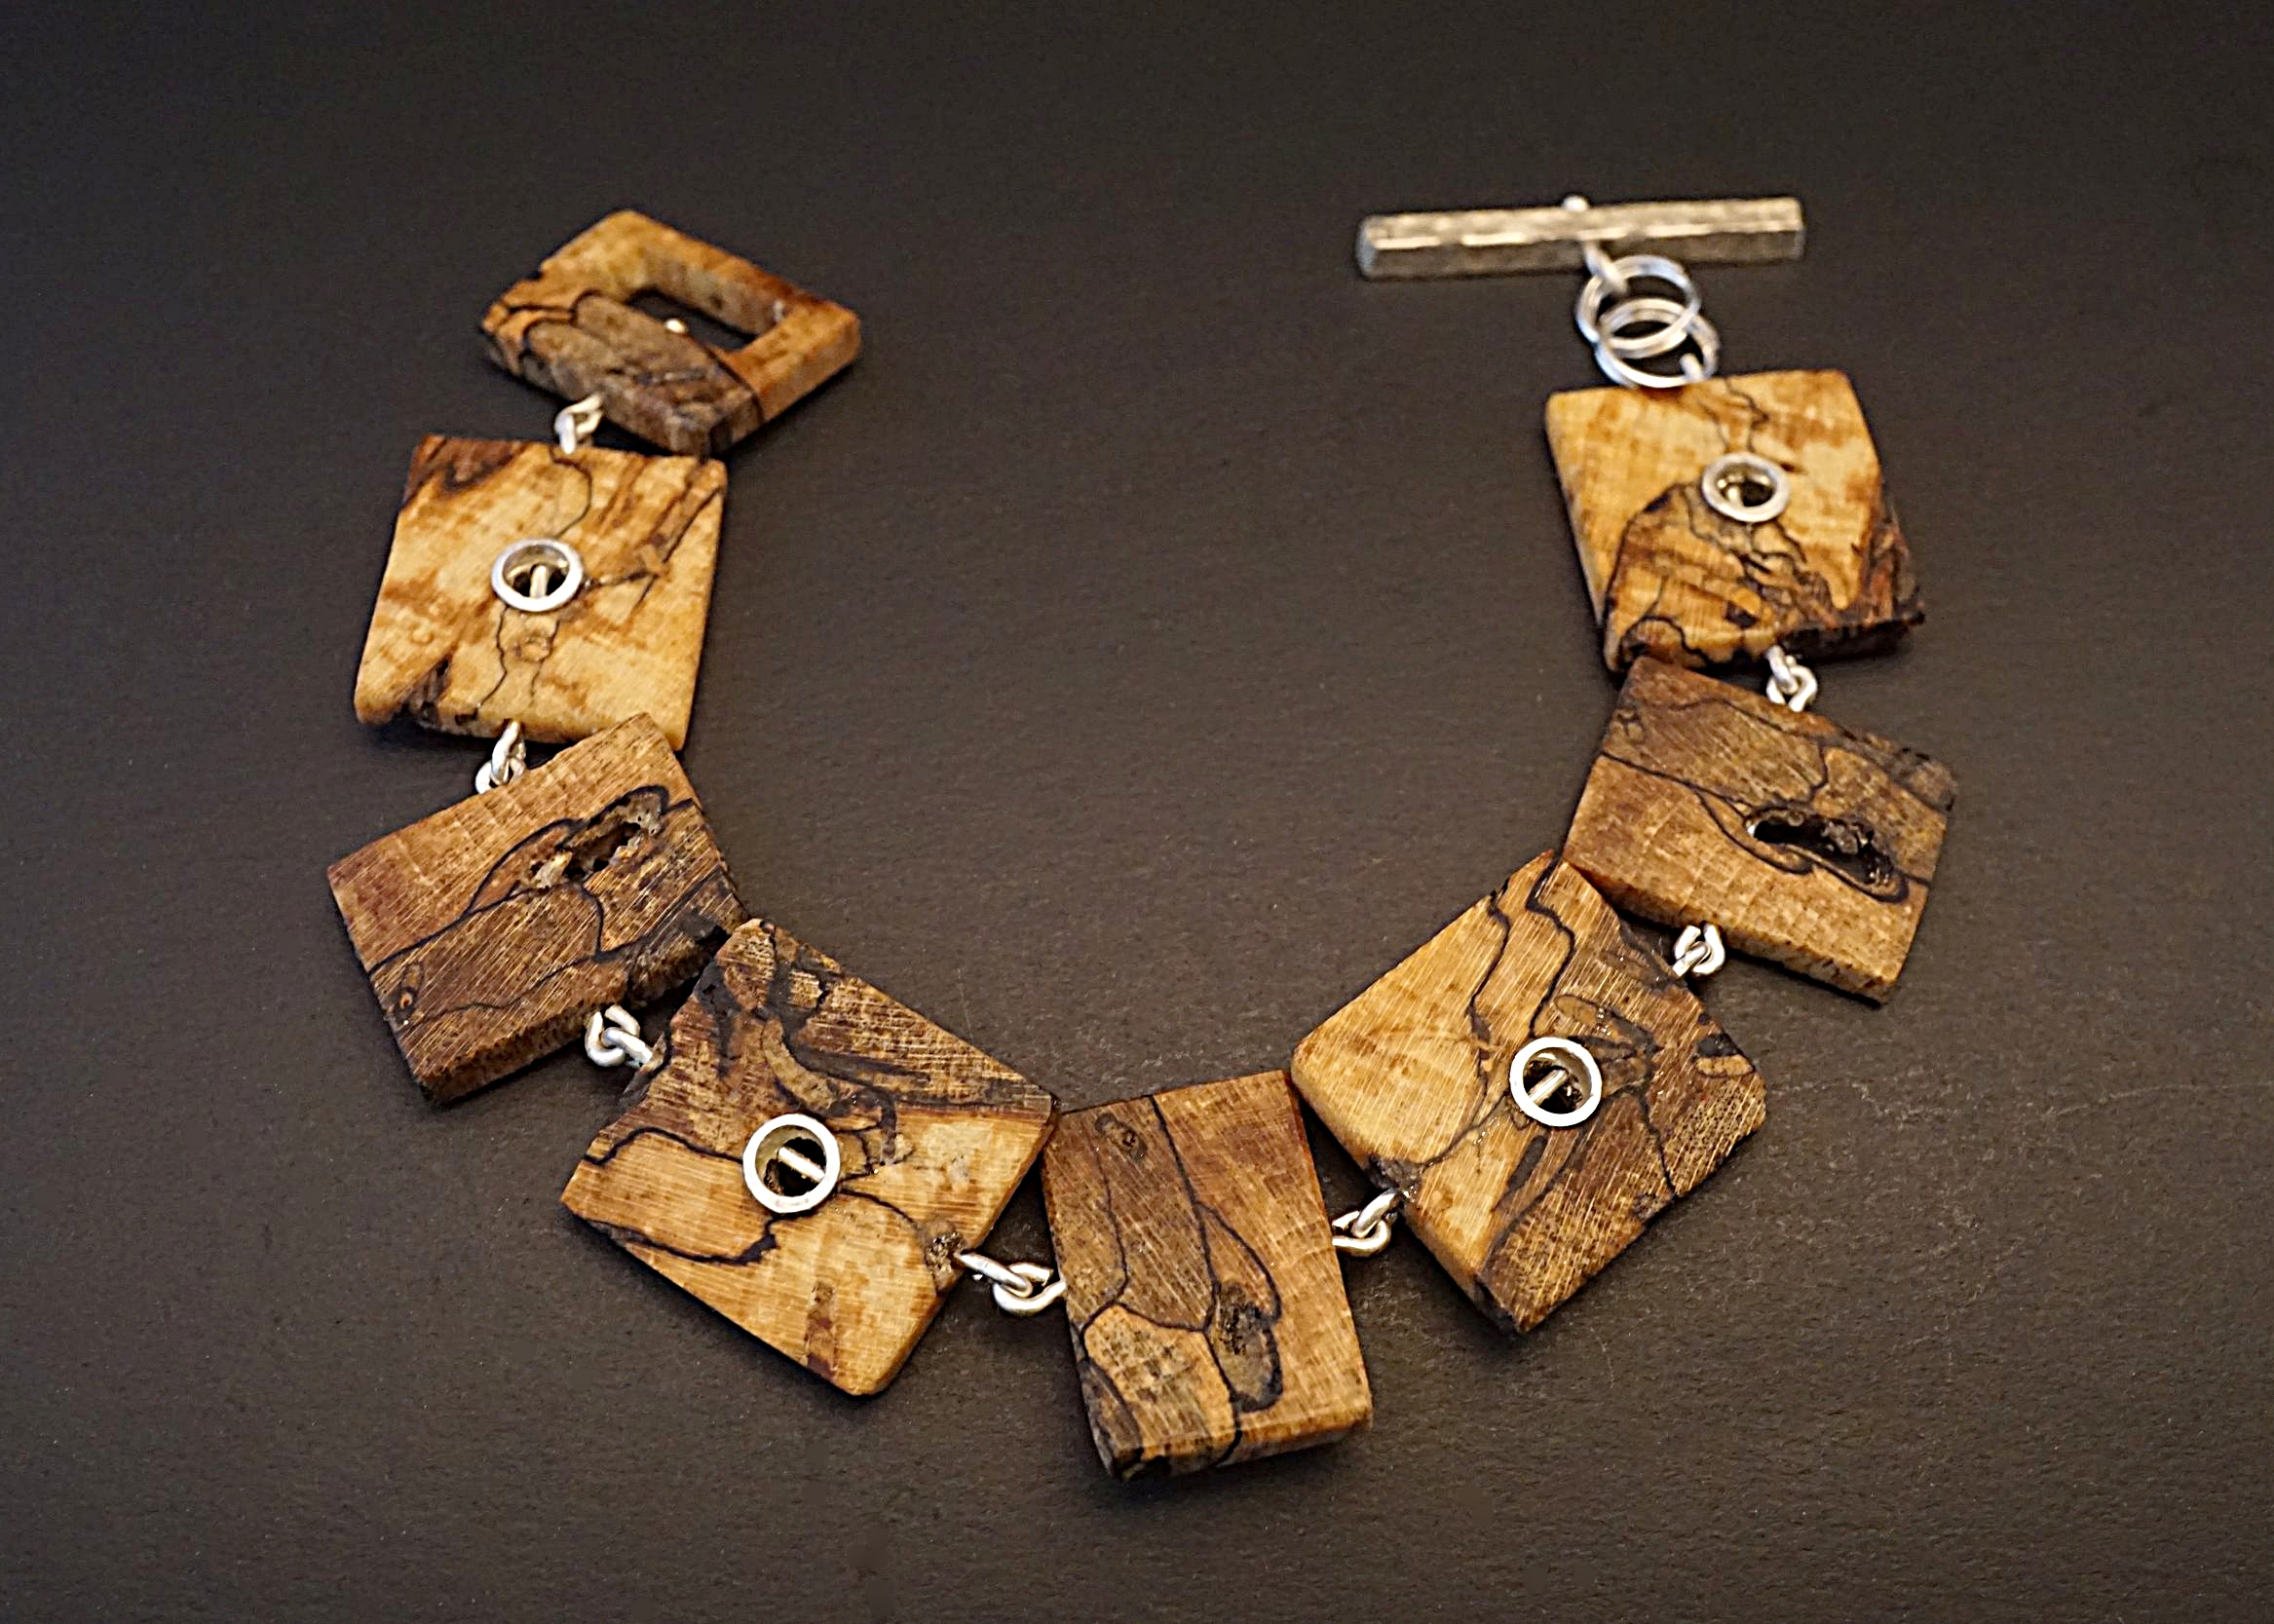 Hand carved northern maple wood links with sterling silver rivets, connector, and toggle